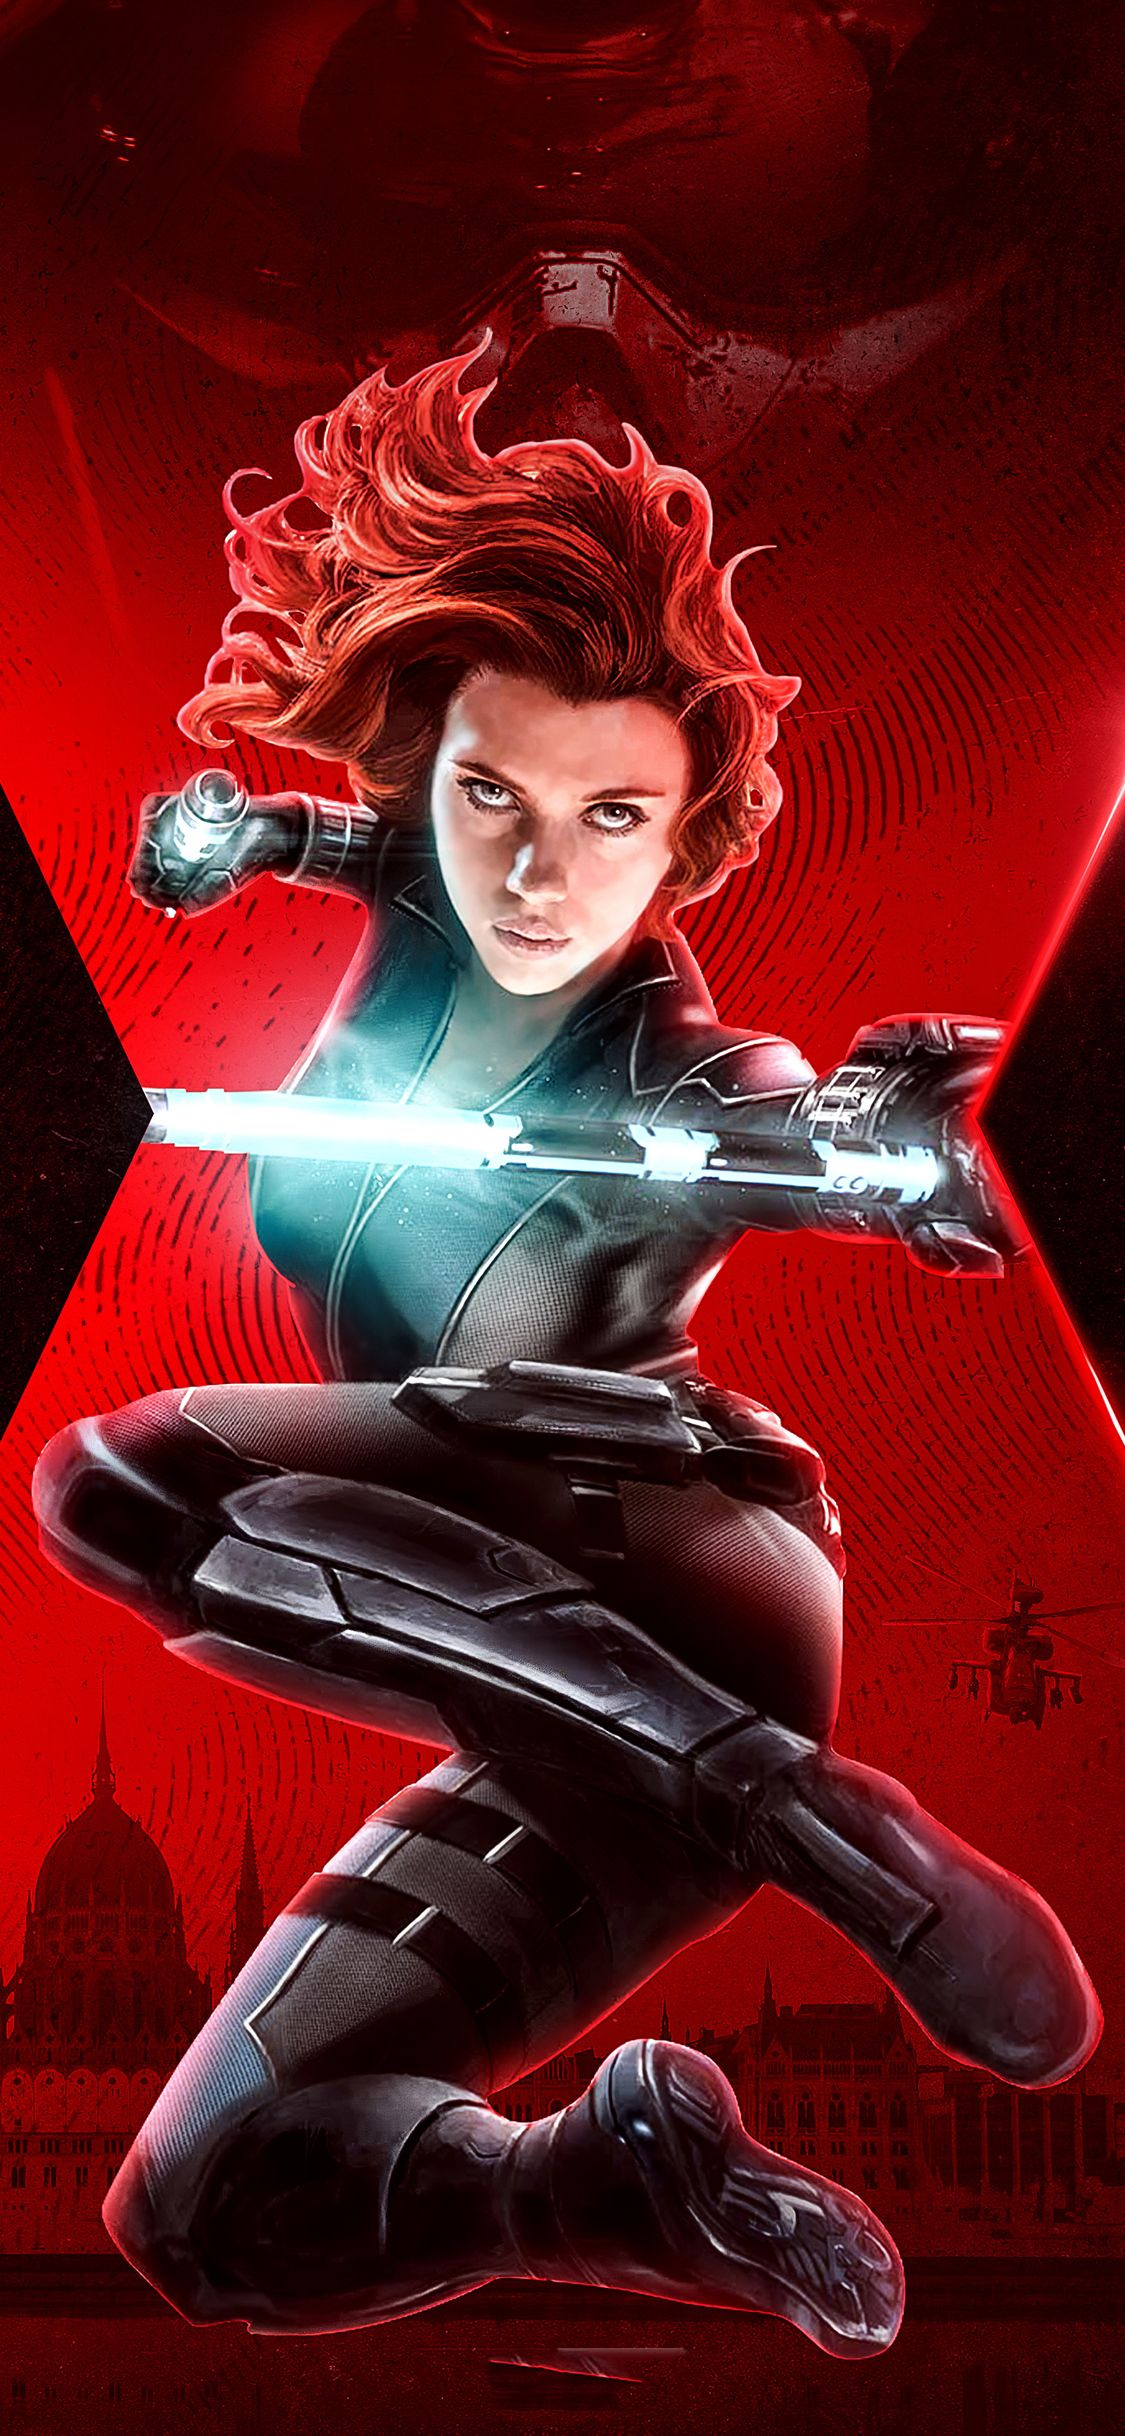 1125x2436 Black Widow 2021 Iphone Xs Iphone 10 Iphone X Hd 4k Wallpapers Images Backgrounds Photo Black Widow Marvel Black Widow Wallpaper Black Widow Movie